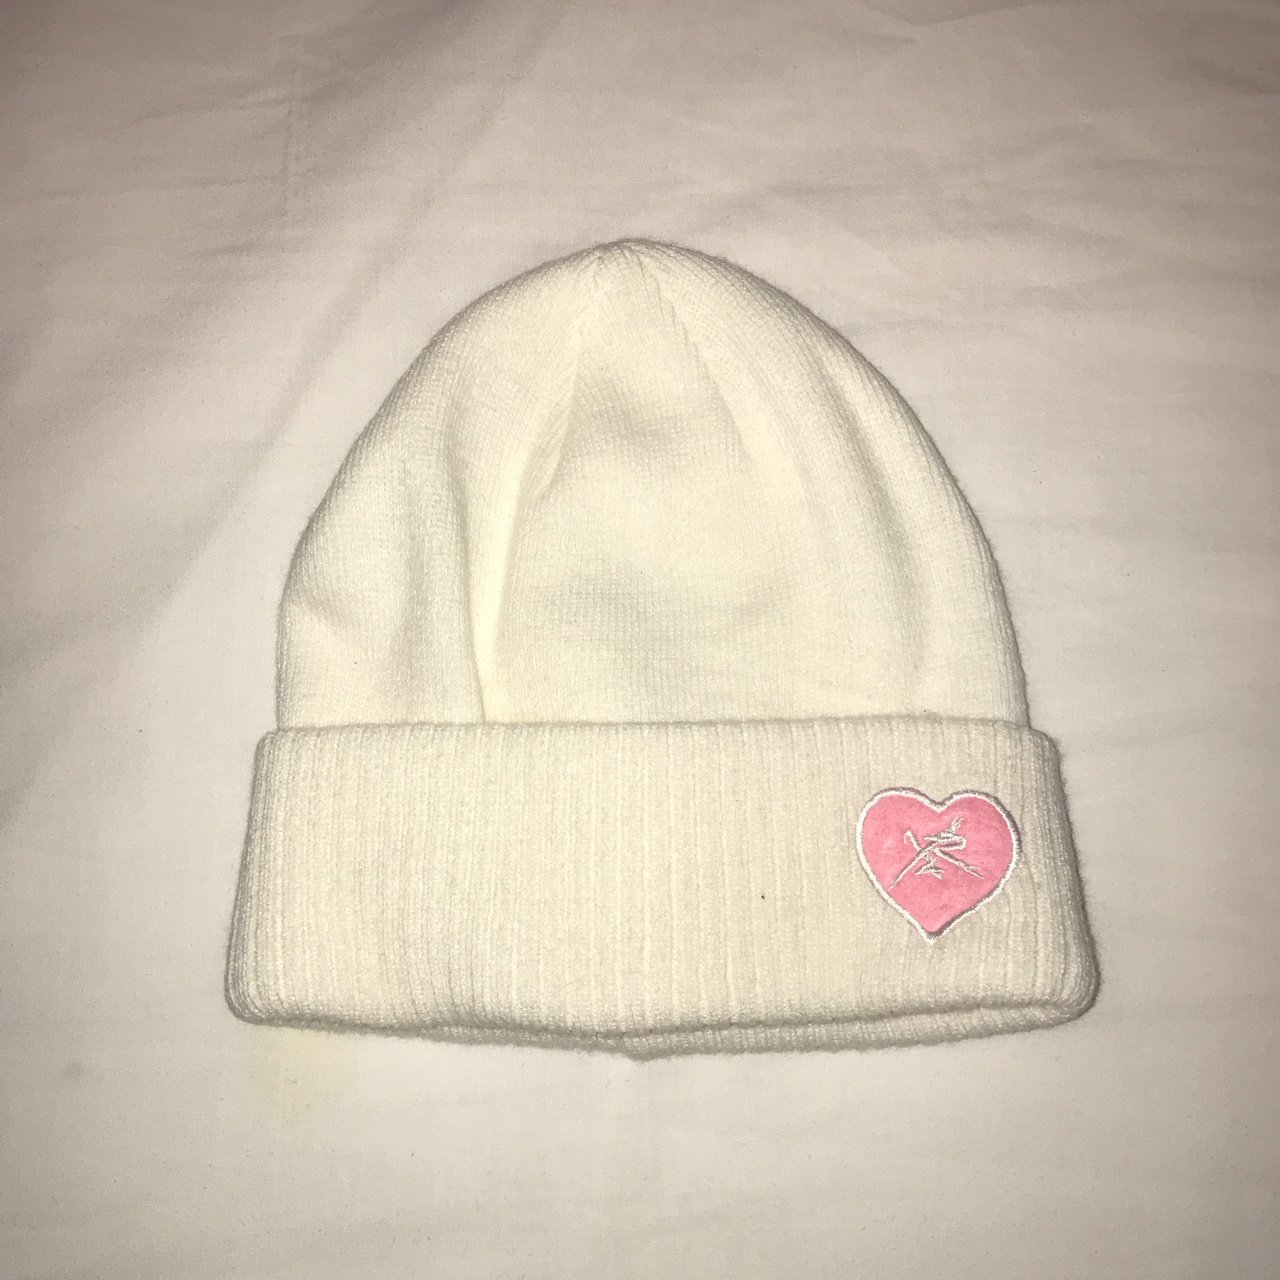 white young   reckless beanie with pink heart decal logo - Depop 1831fb03974